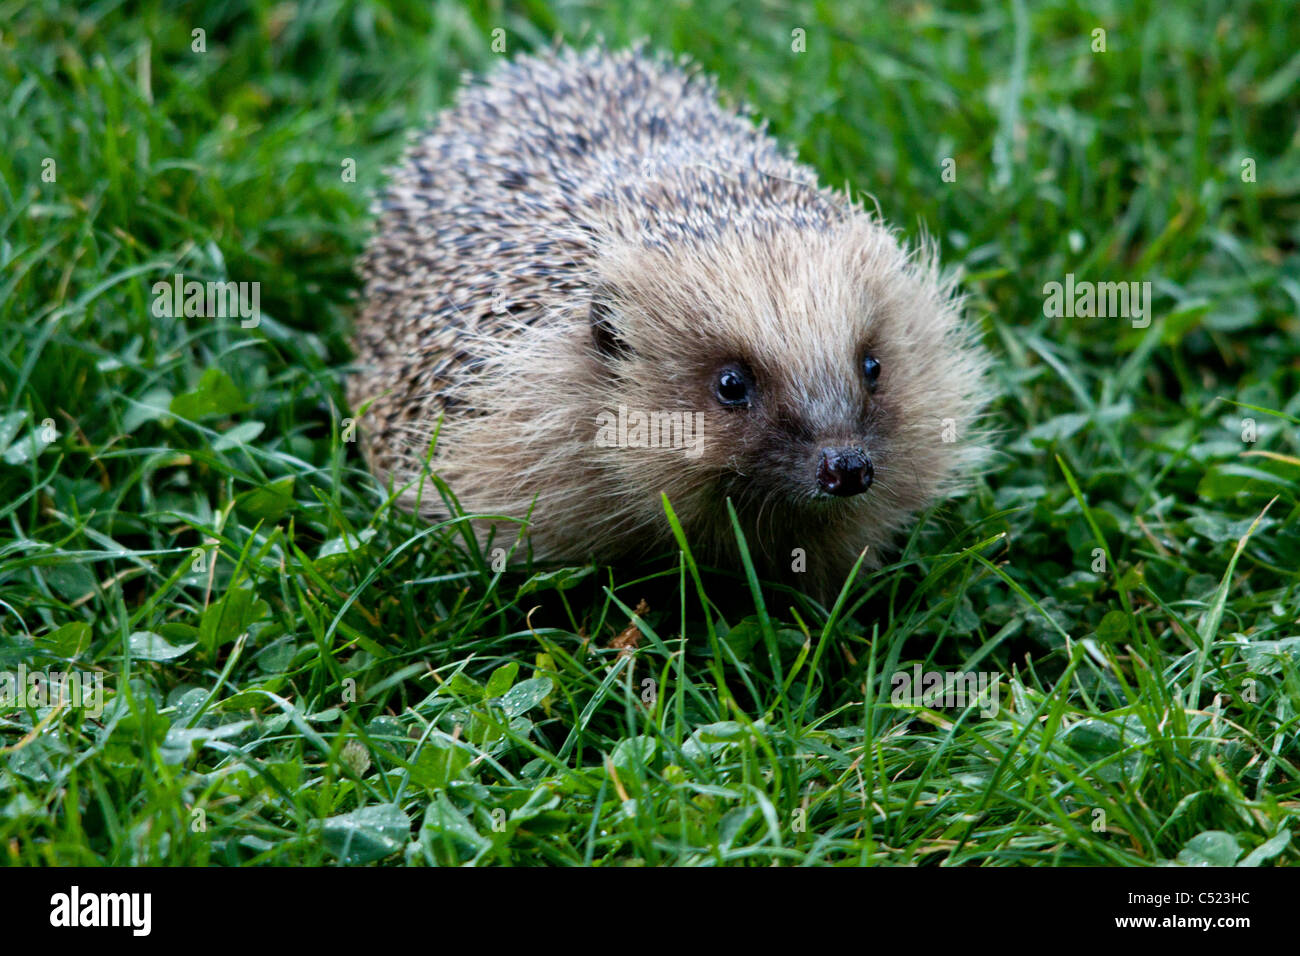 A Hedgehog at the British Wildlife Center searching for food - Stock Image